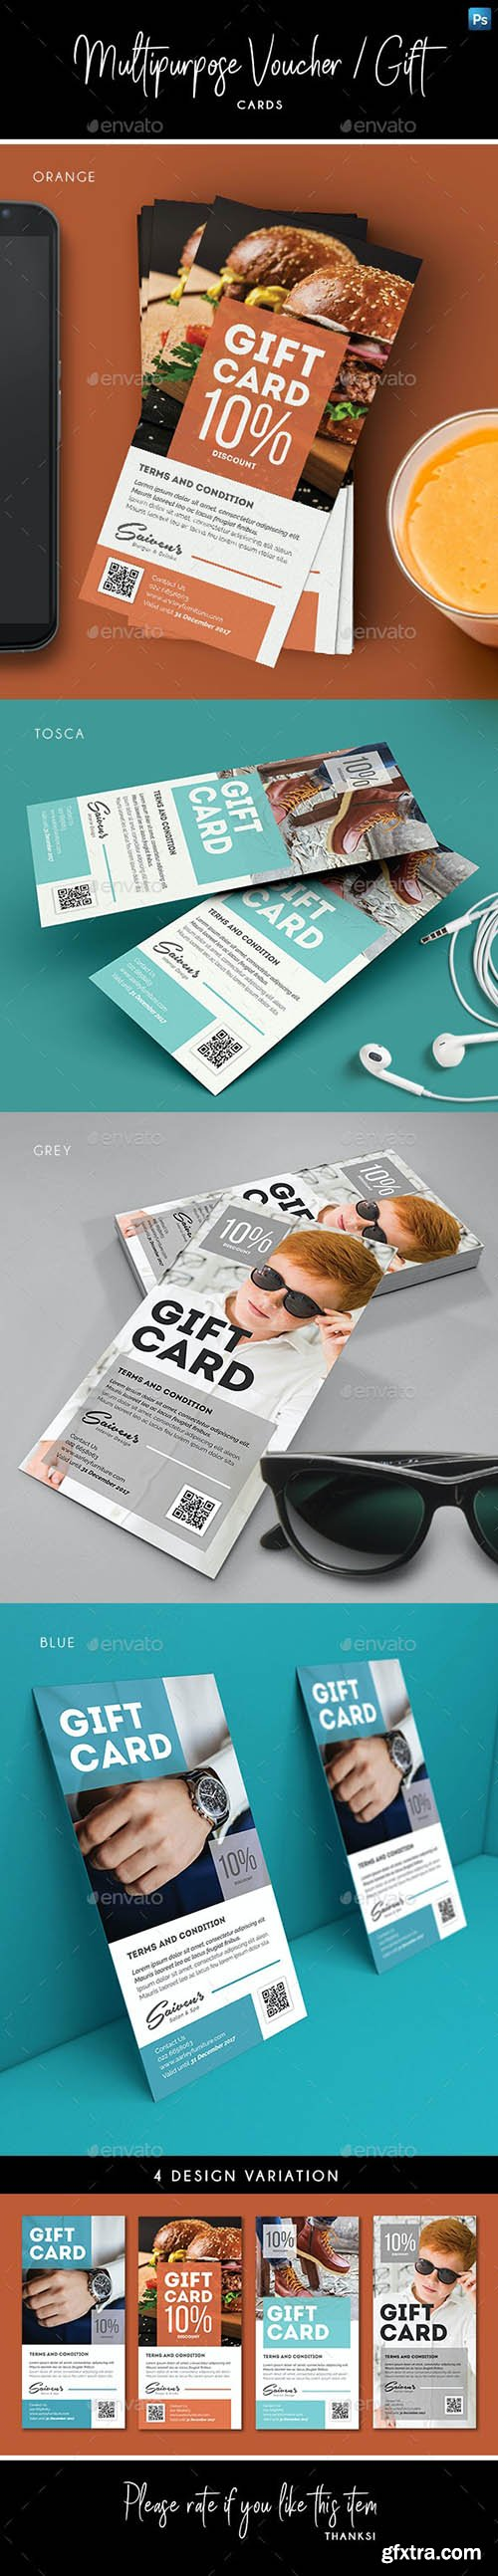 GraphicRiver - Multipurpose Voucher / Gift Card 27924838